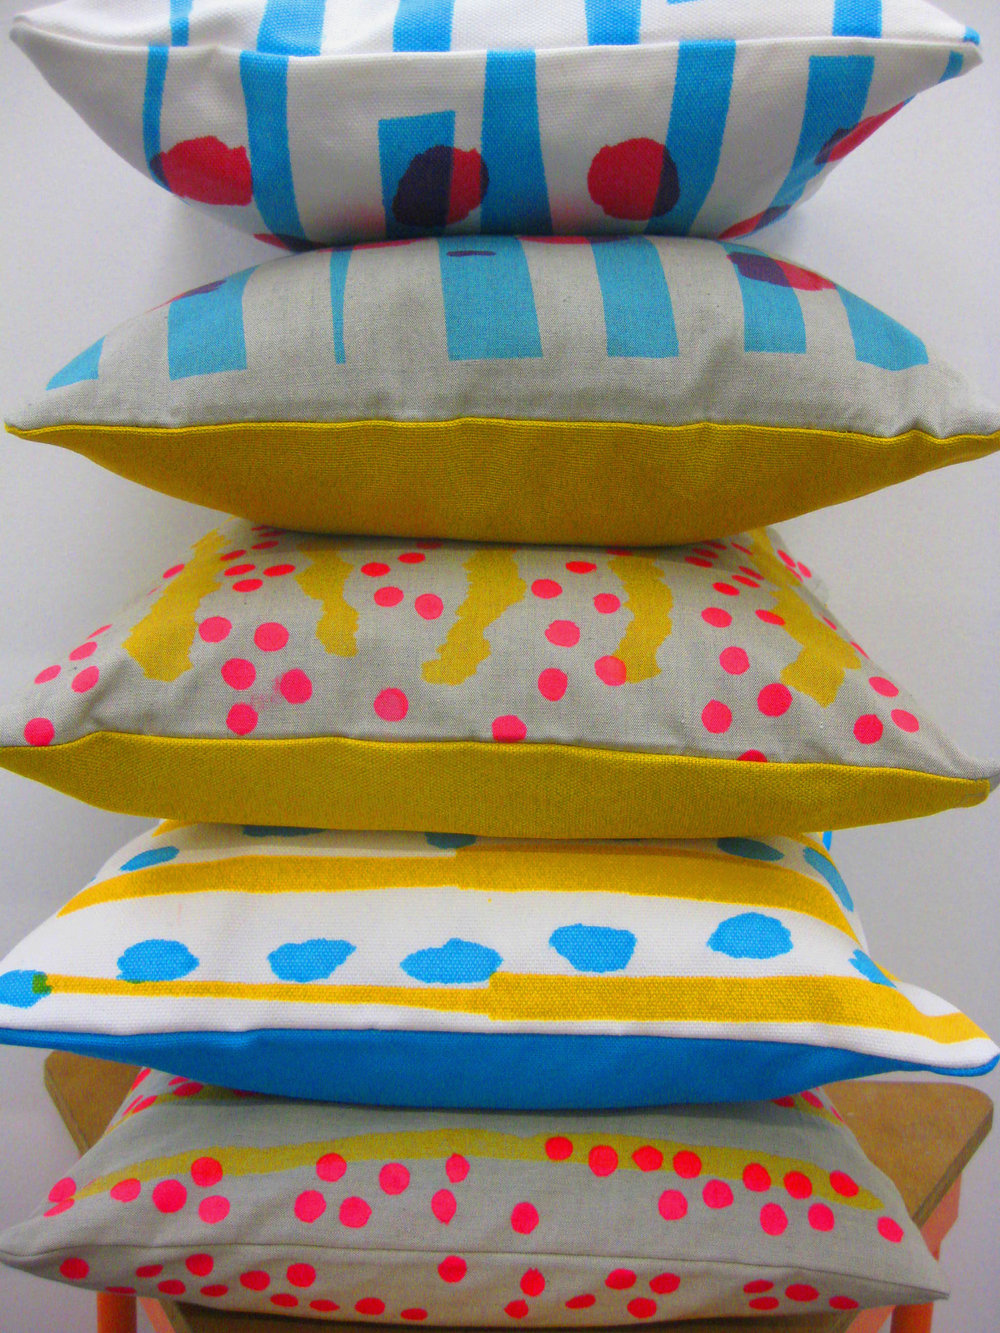 cushion stack.JPG